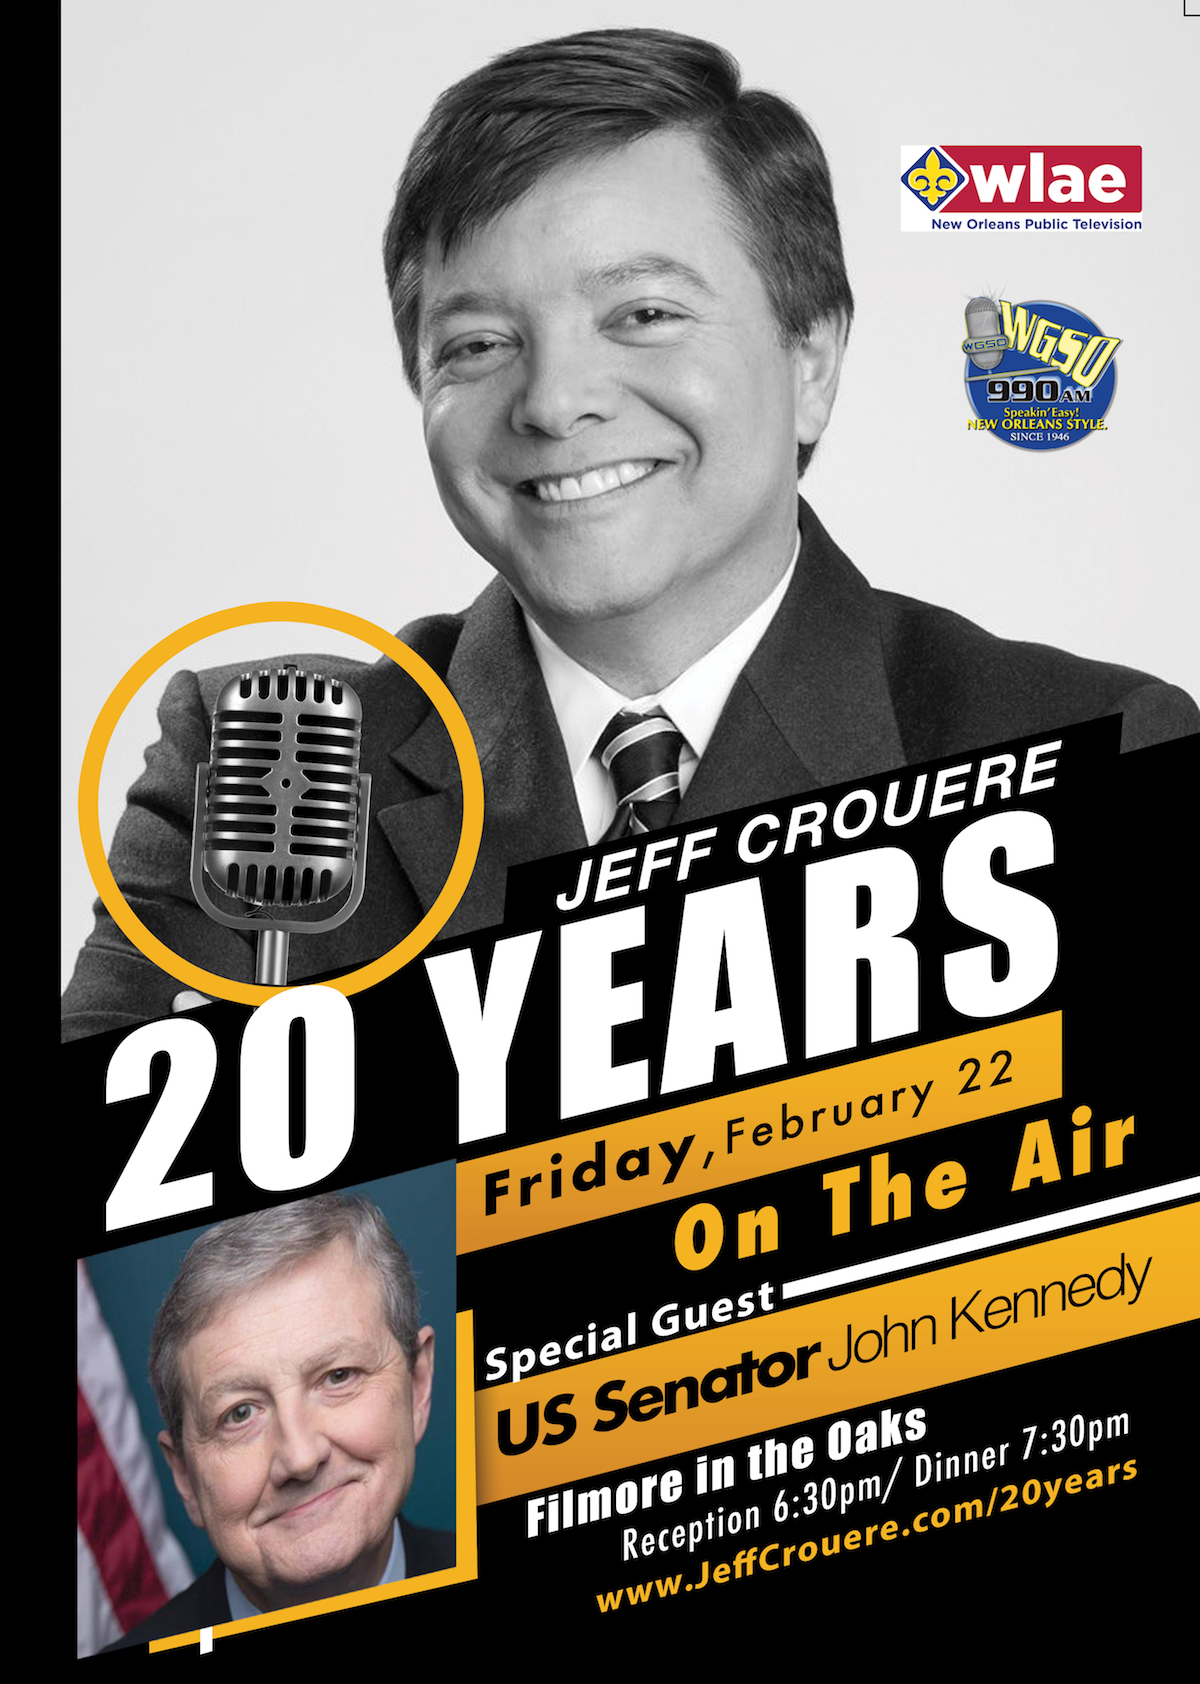 Jeff-20Yrs-Event-Flyer-Poster copy.jpg